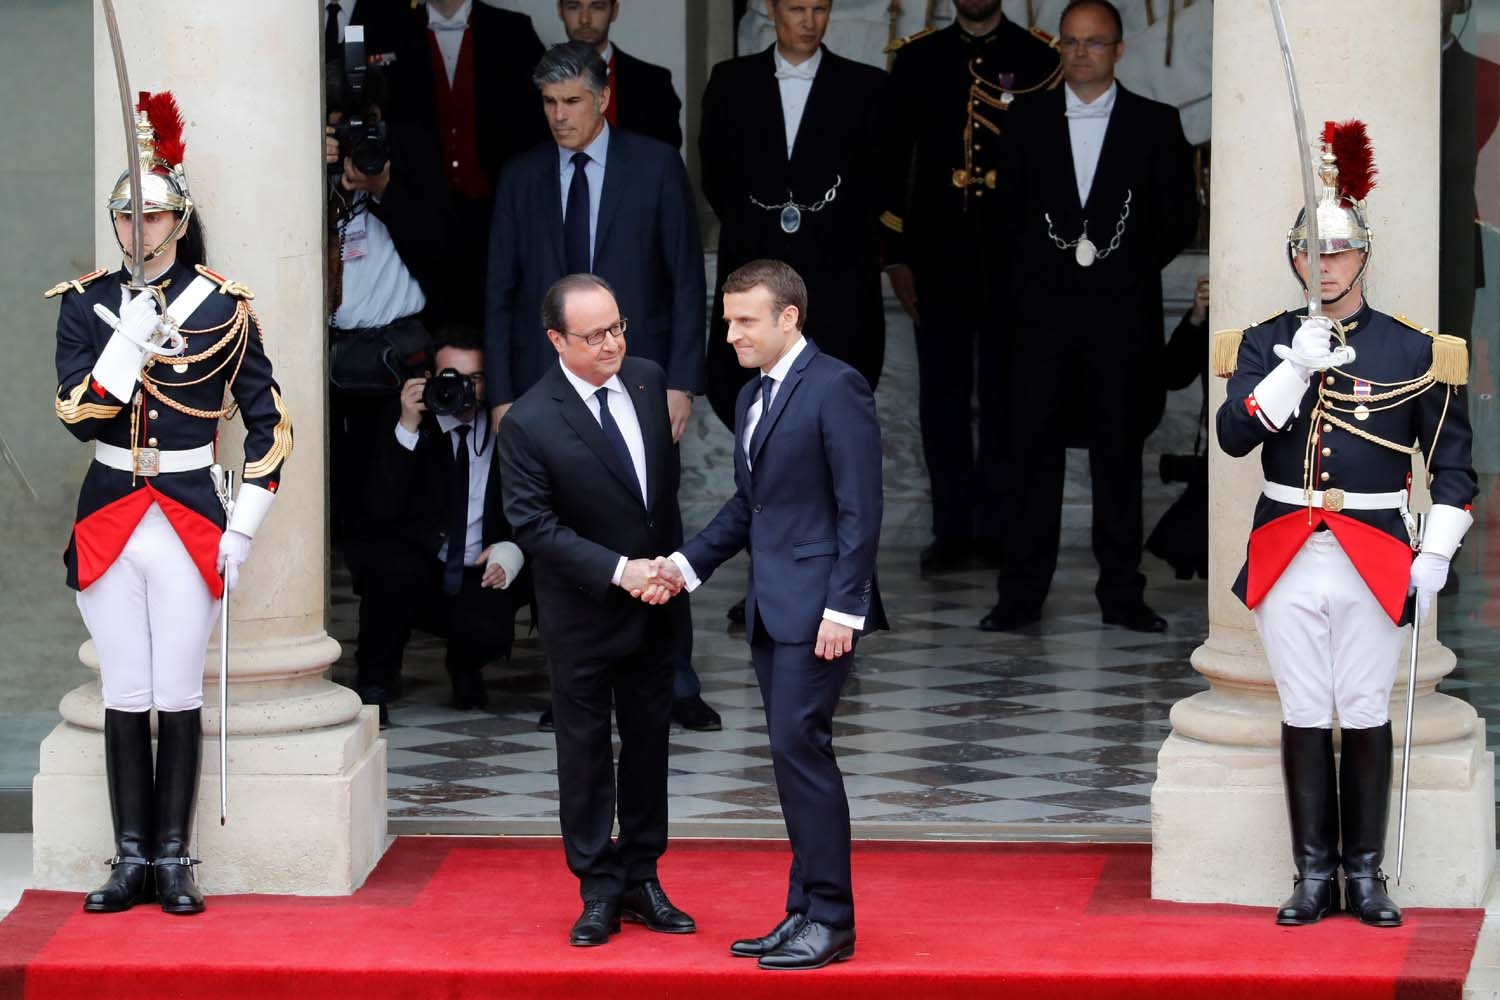 French newly elected President Emmanuel Macron (R) is welcomed by his predecessor Francois Hollande as he arrives at the Elysee presidential Palace for the handover and inauguration ceremonies on May 14, 2017 in Paris. / AFP PHOTO / POOL / Patrick KOVARIK